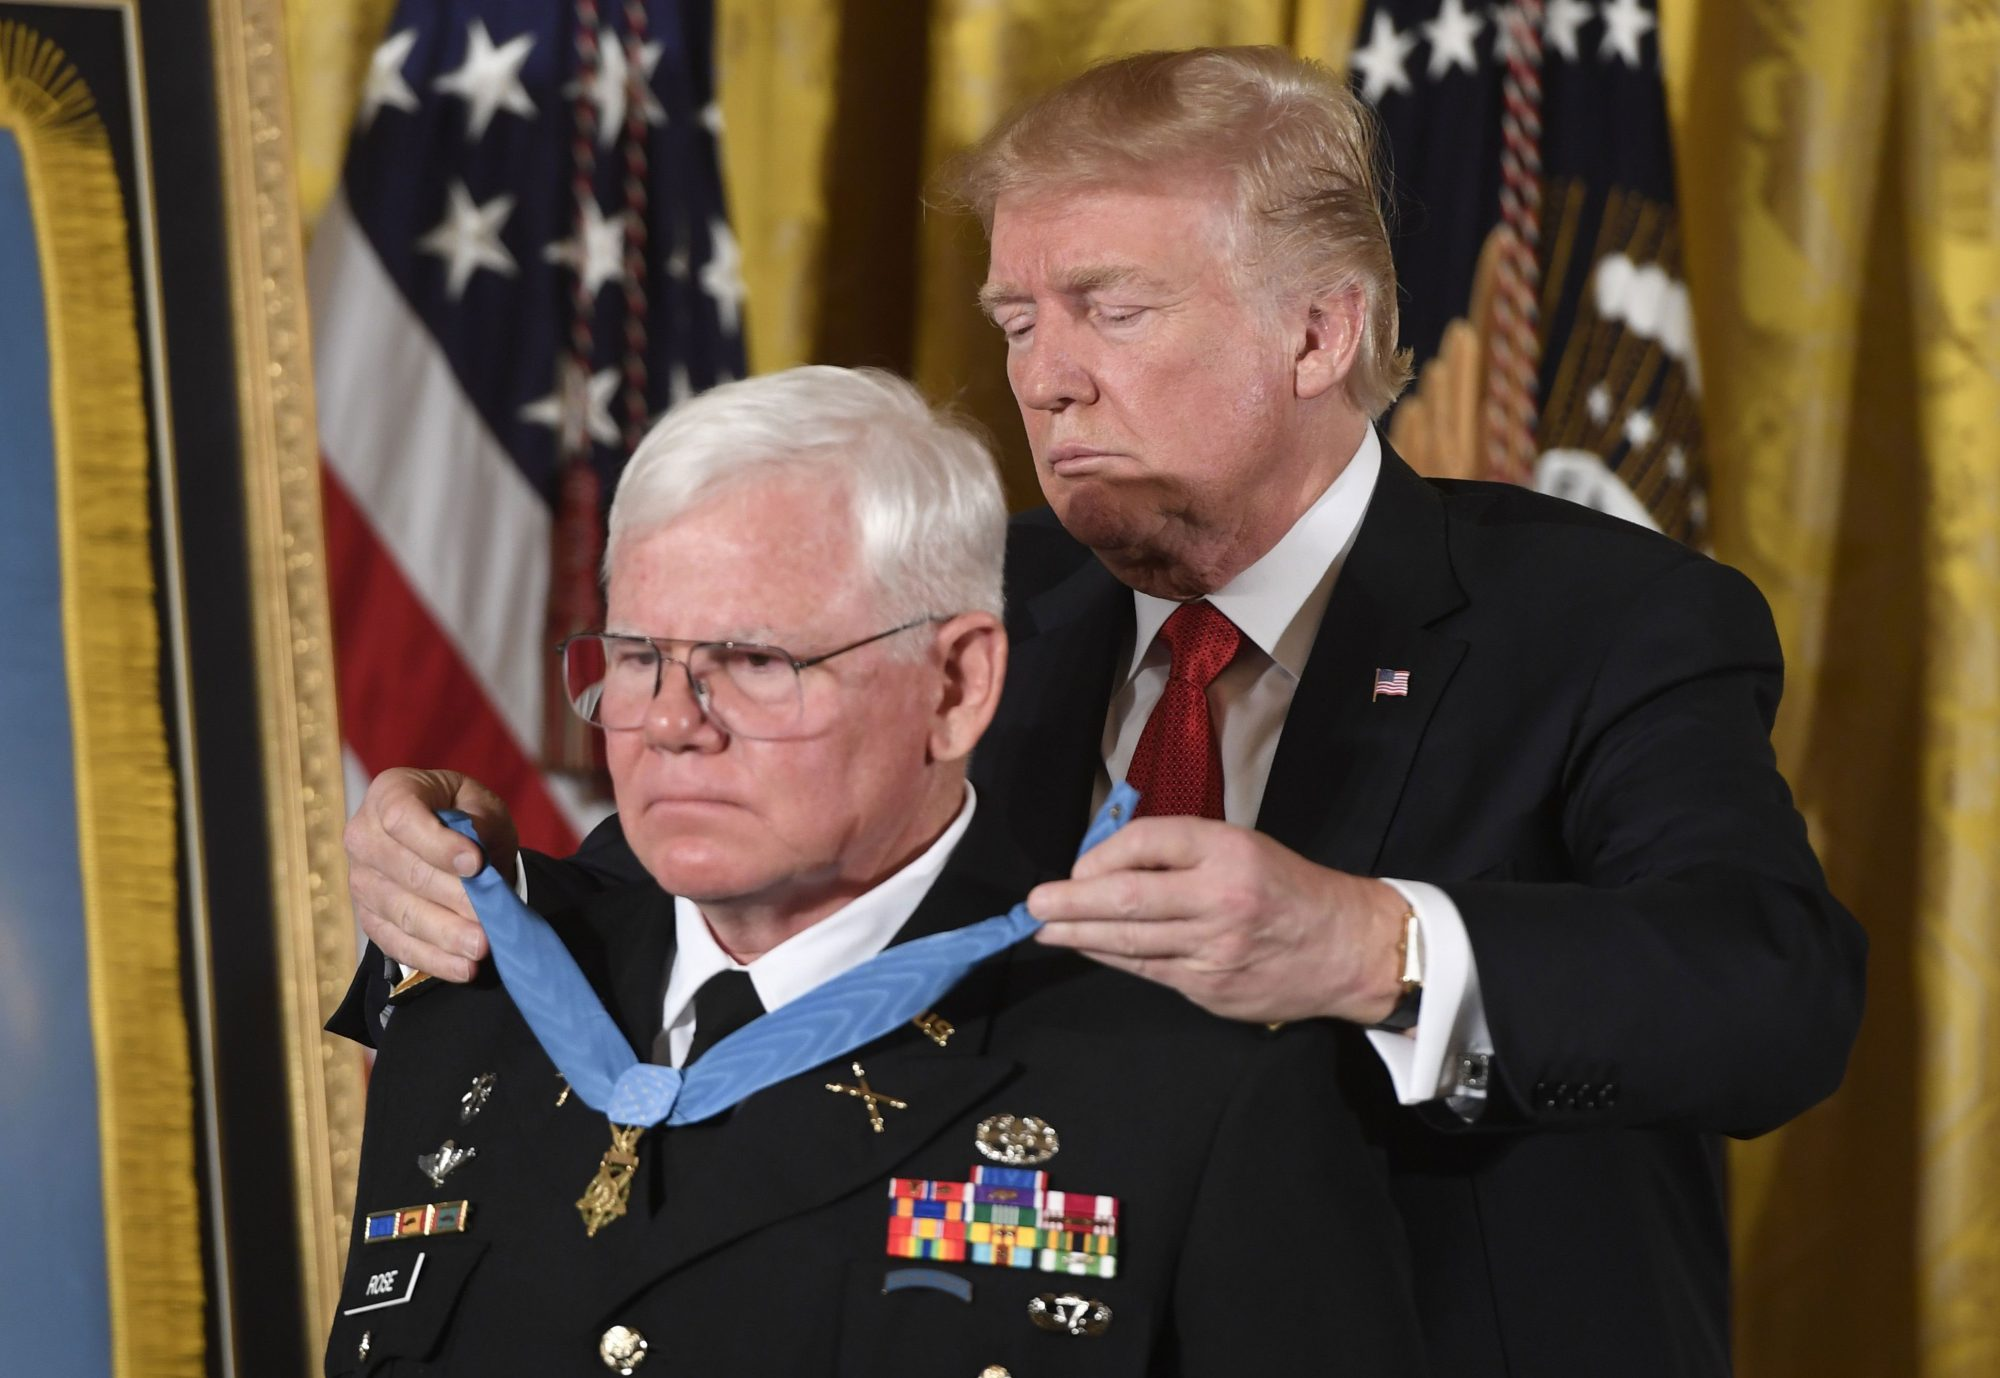 President Trump Awarding Medal of Honor to Gary Rose